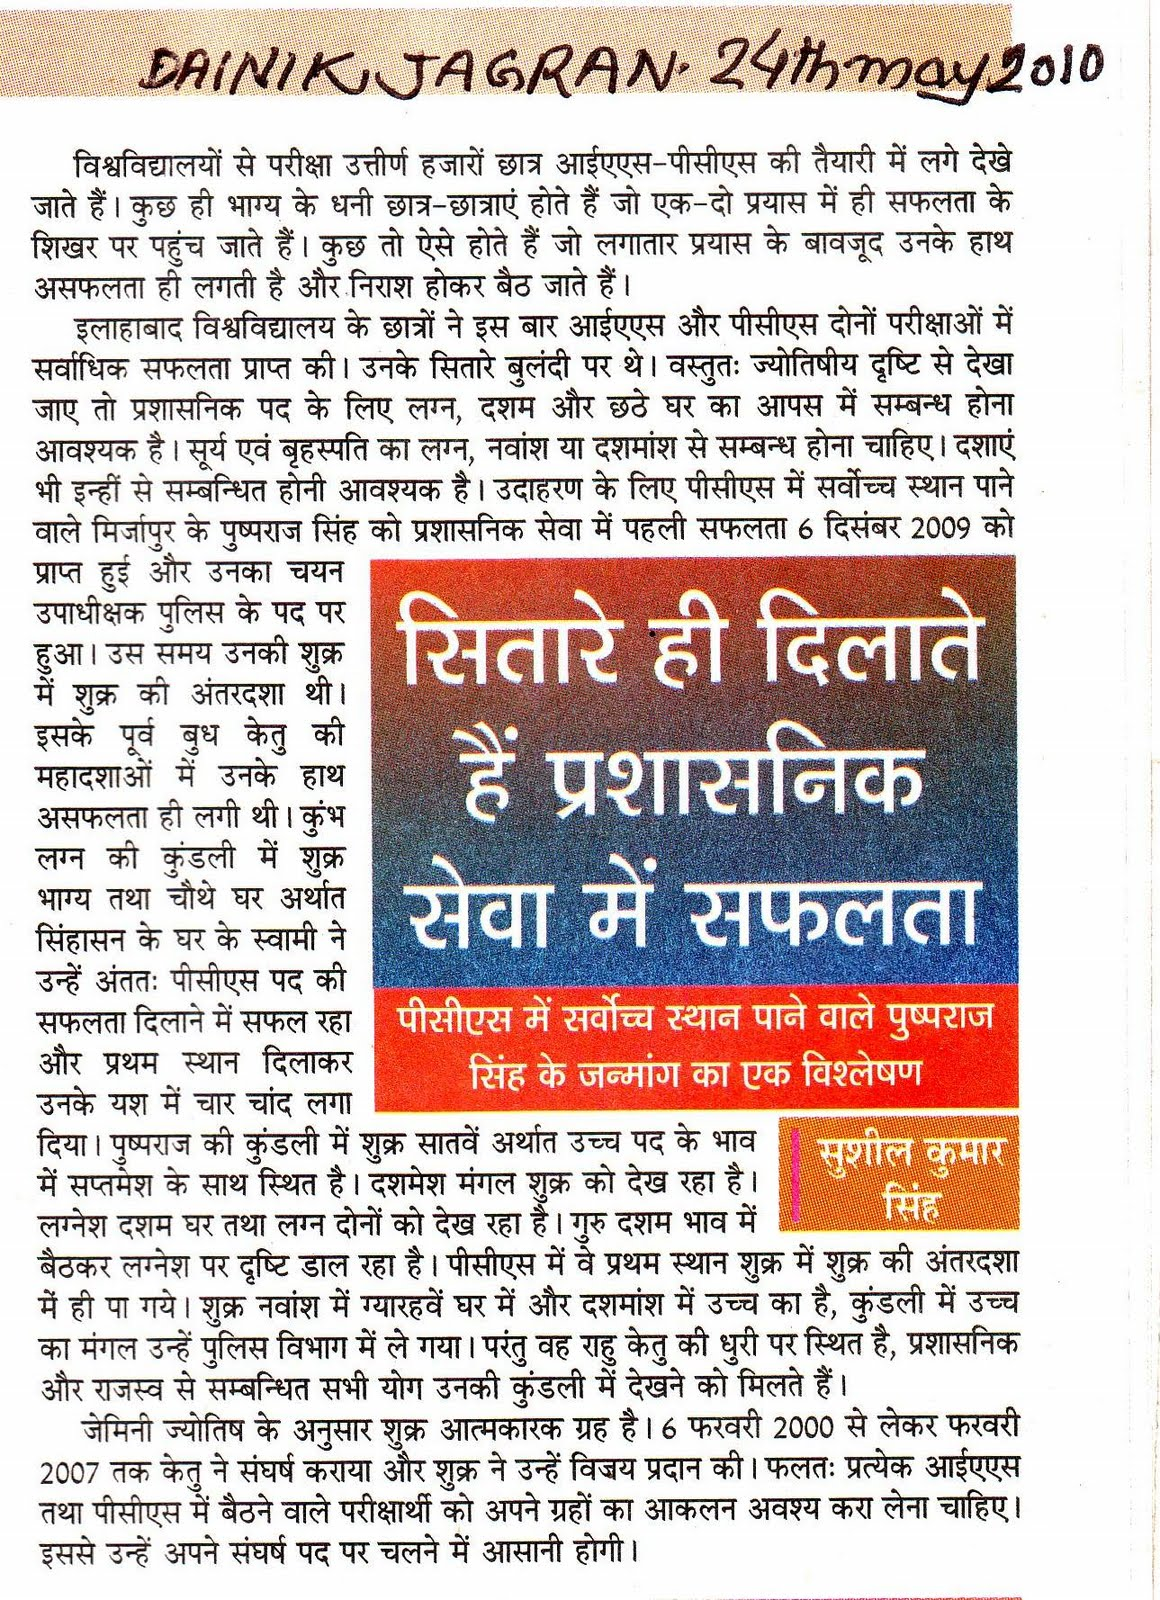 ... my astrological article published in dainik jagran today on 24th may on  PUSHPRAJ SINGH who secured first rank in Uttar pradesh.On 19th june result  of UP ...